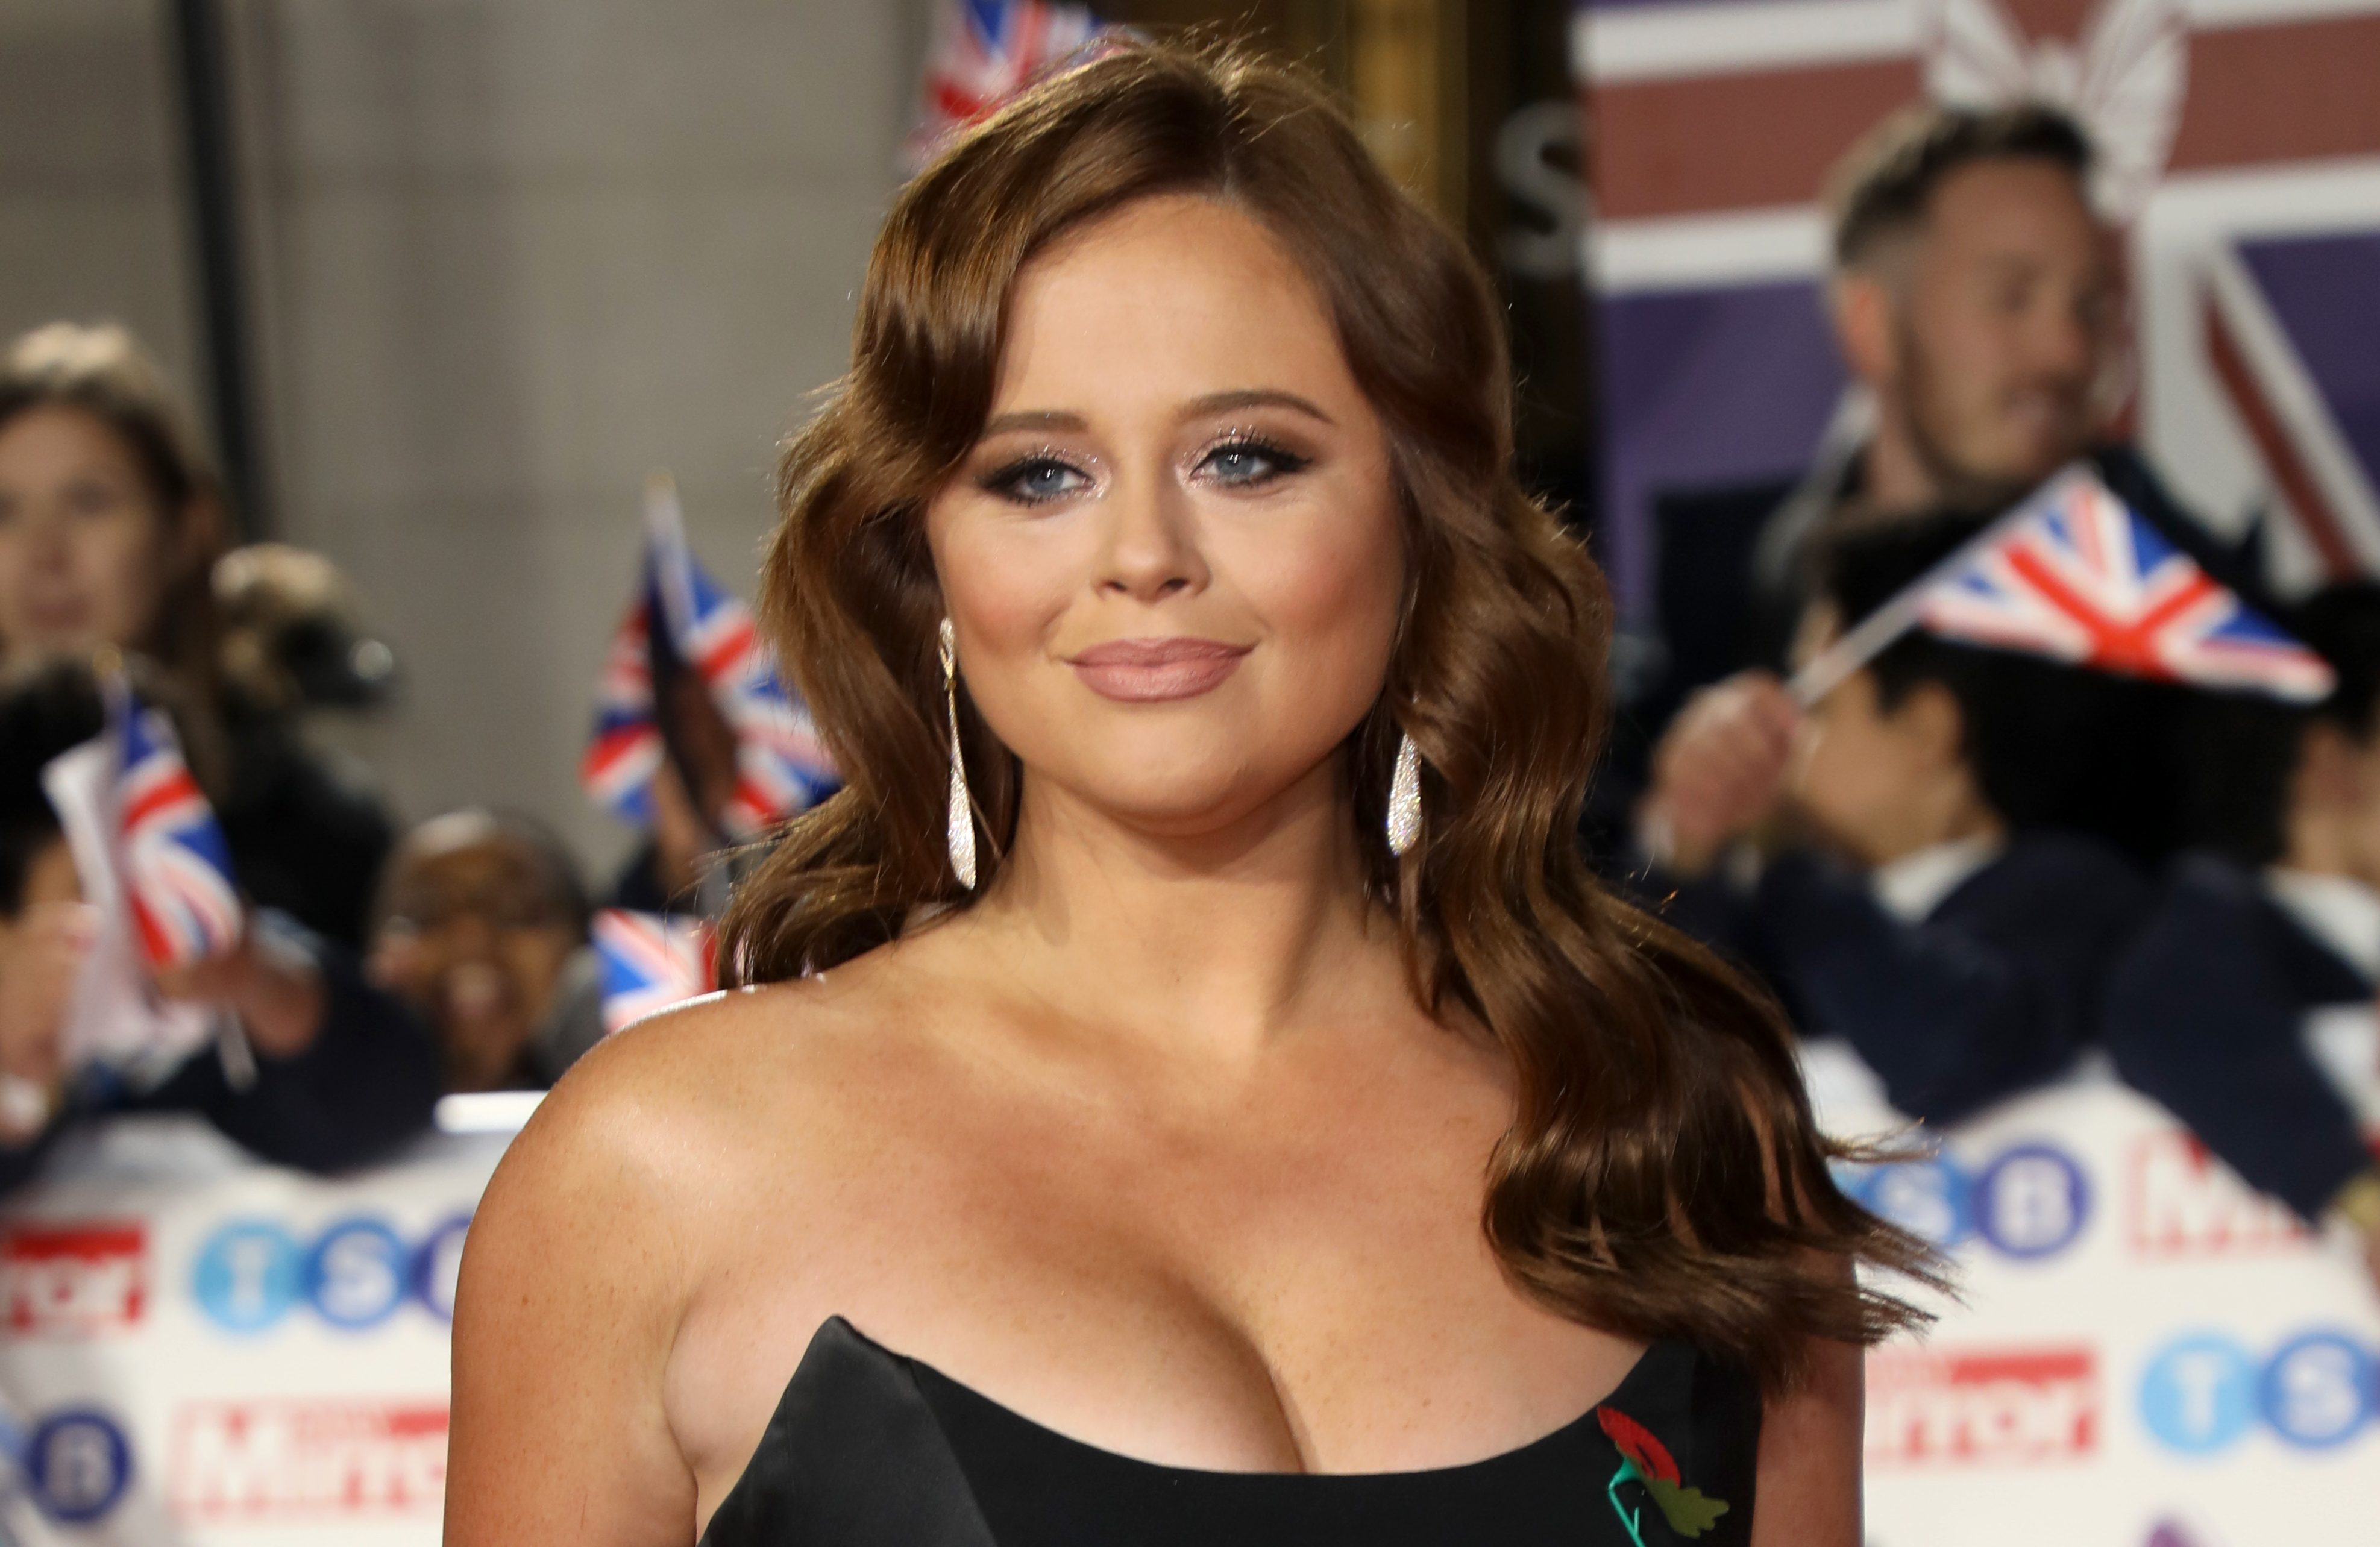 'Scared' Emily Atack reassured by fans as I'm A Celebrity presenter strips down to her bikini